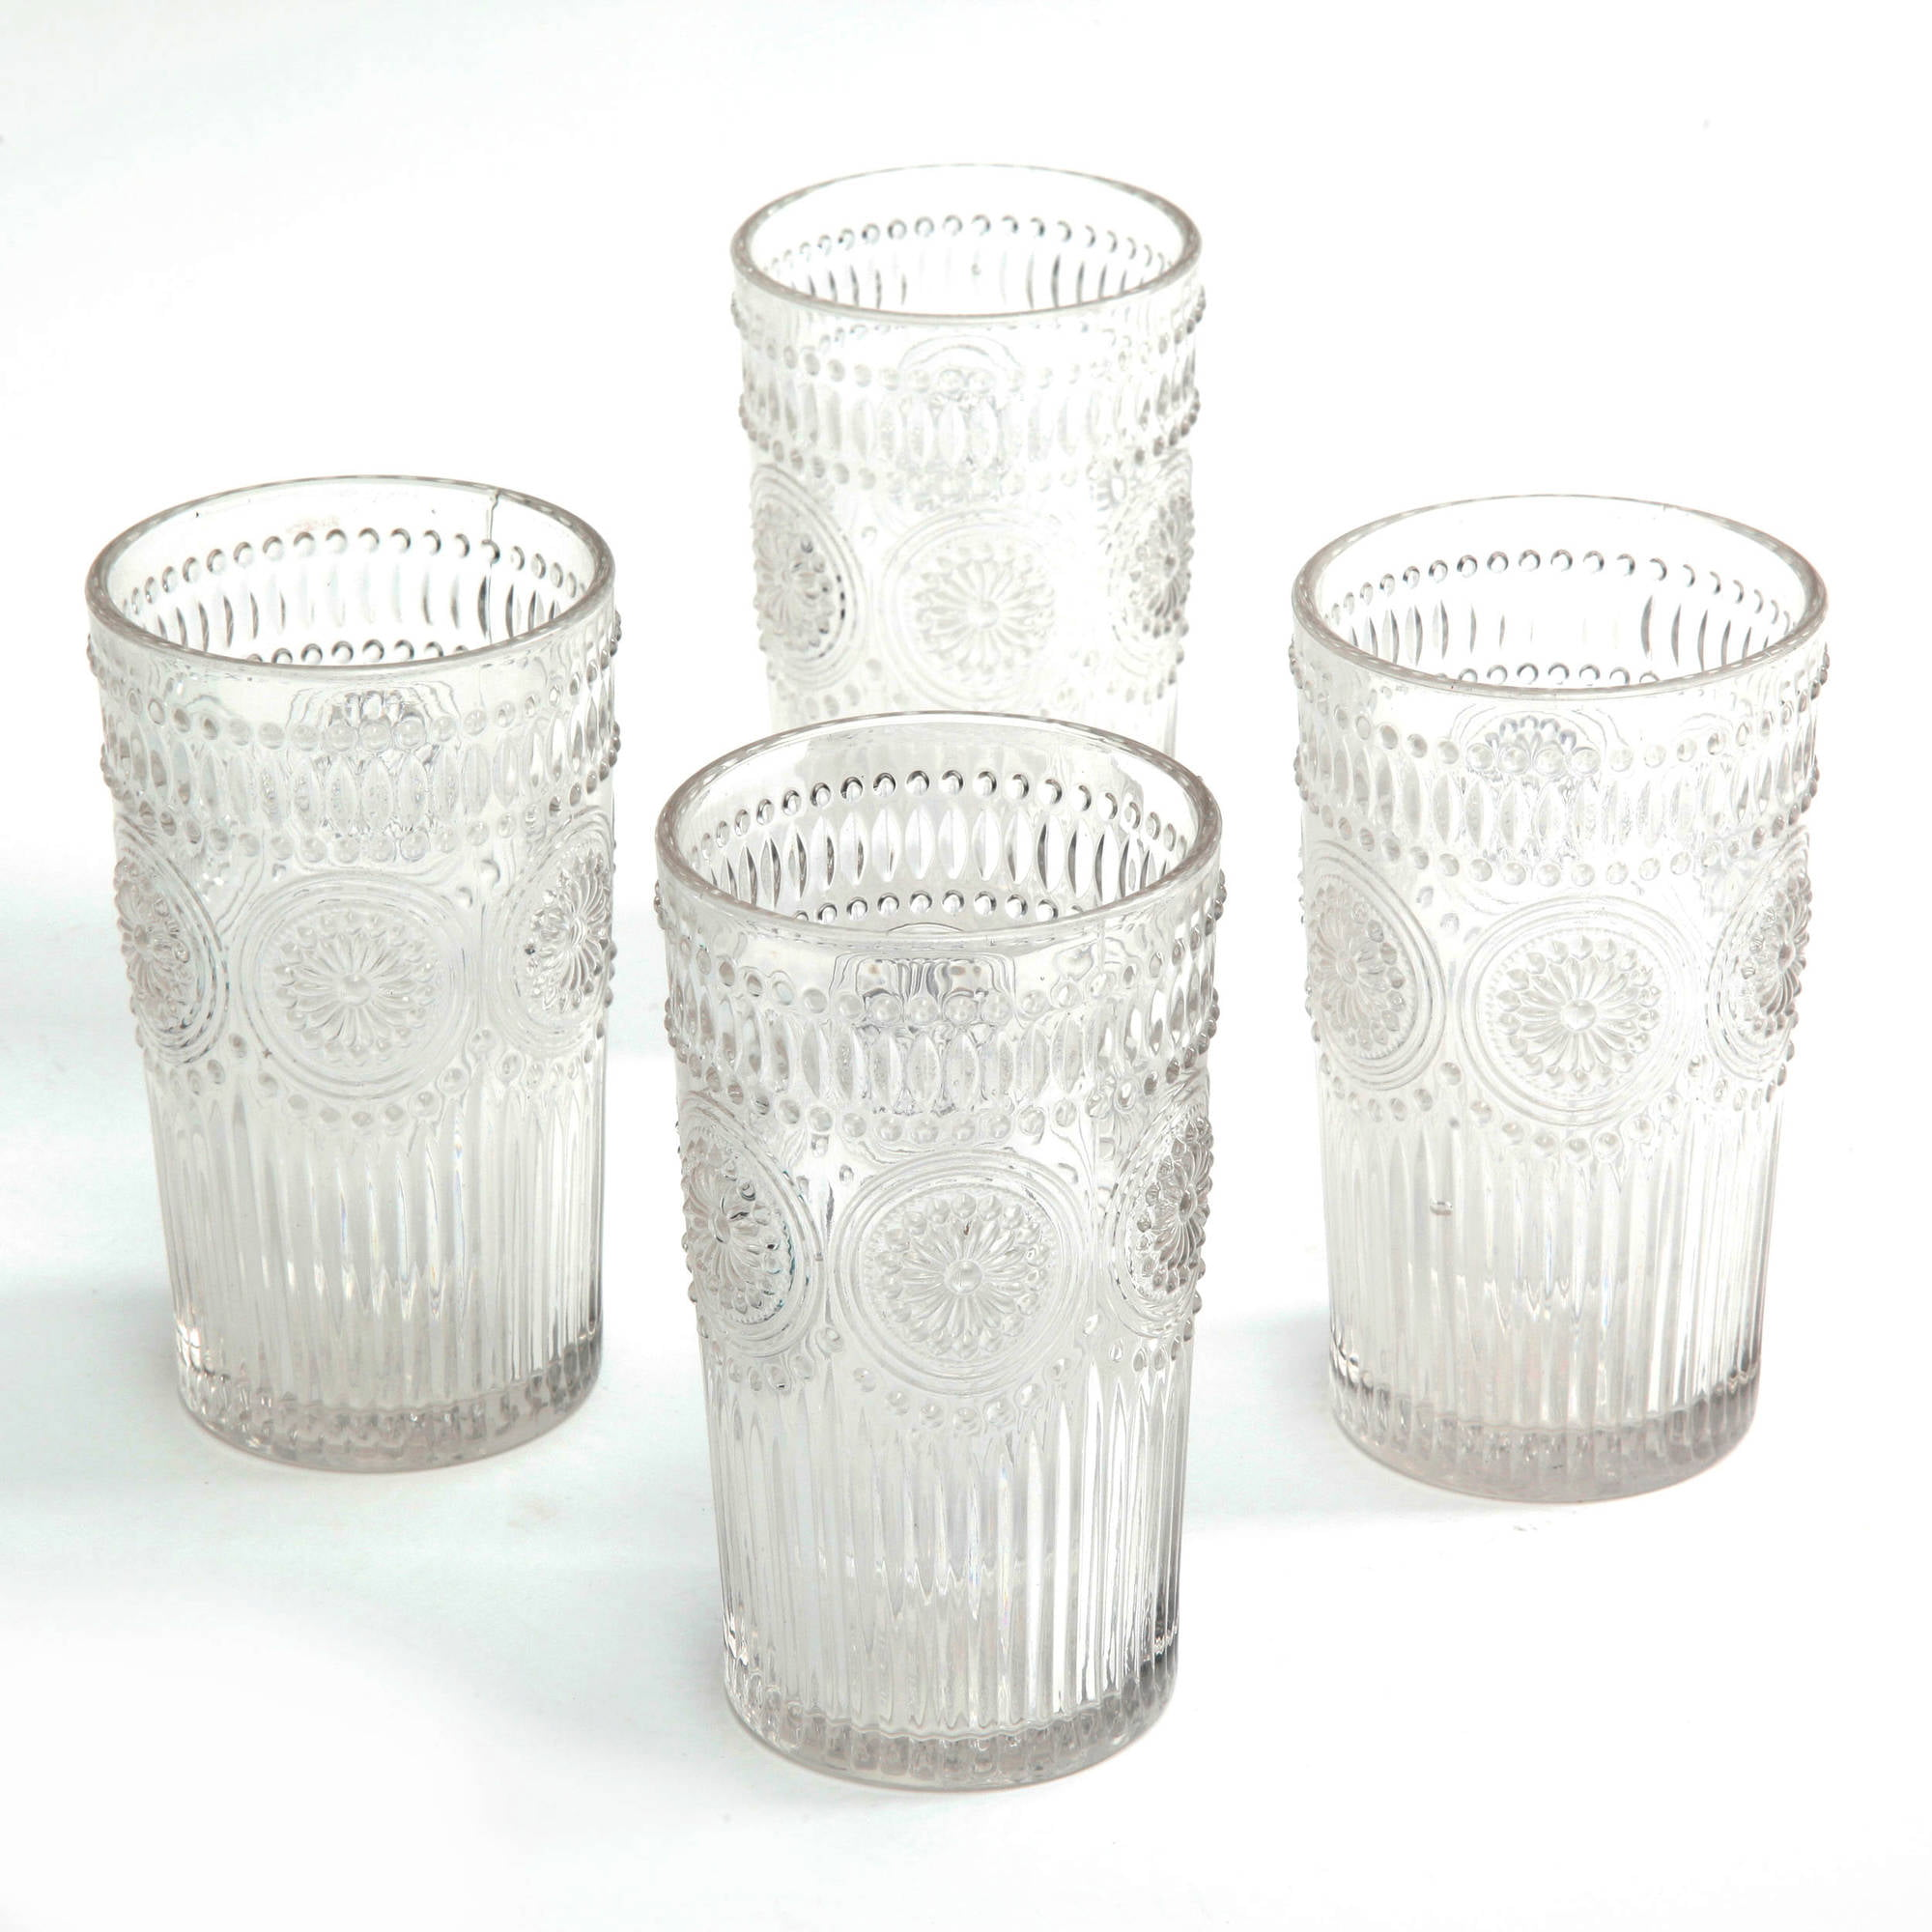 the pioneer woman adeline 16 ounce emboss glass drinking tumblers set of 4 clear ebay. Black Bedroom Furniture Sets. Home Design Ideas